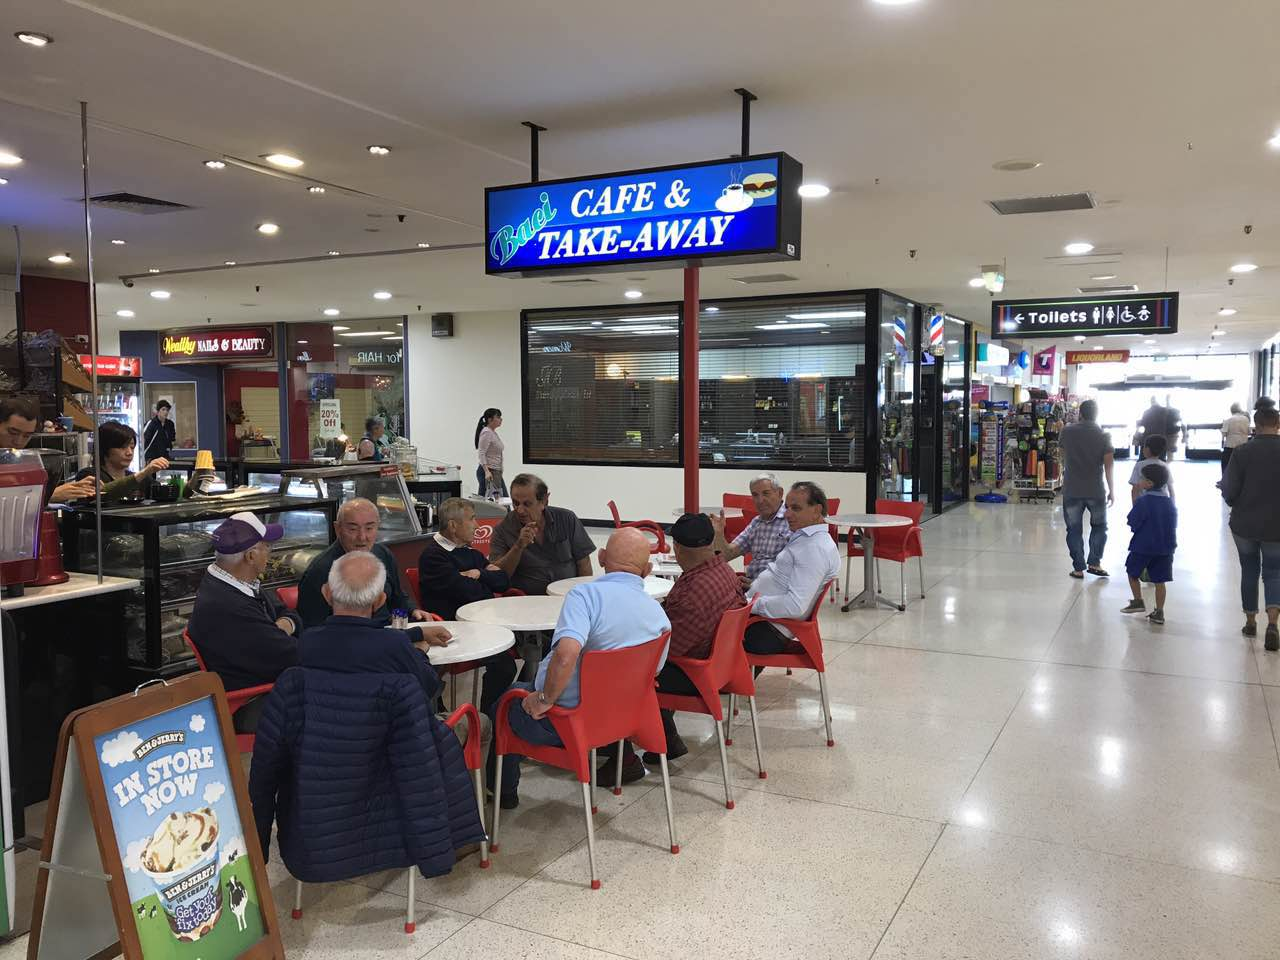 Cafe in North Perth with low rent